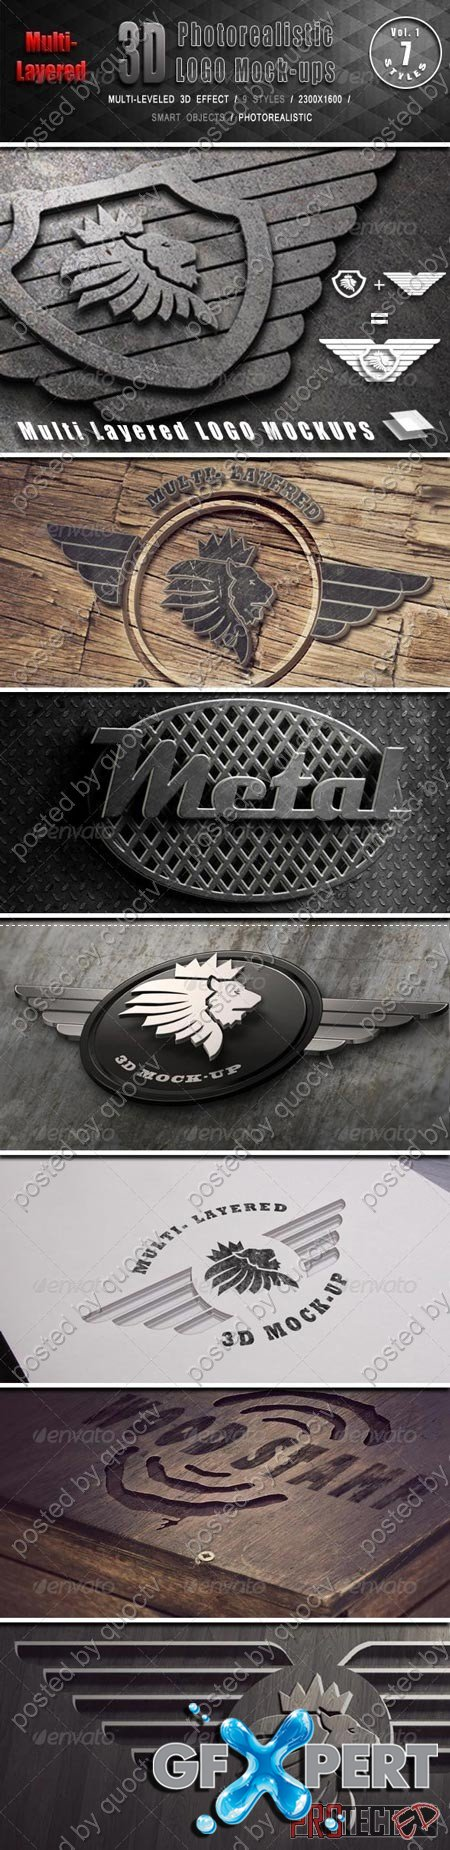 GraphicRiver Photorealistic Multi-Layered 3D Logo Mock-Up 6453380